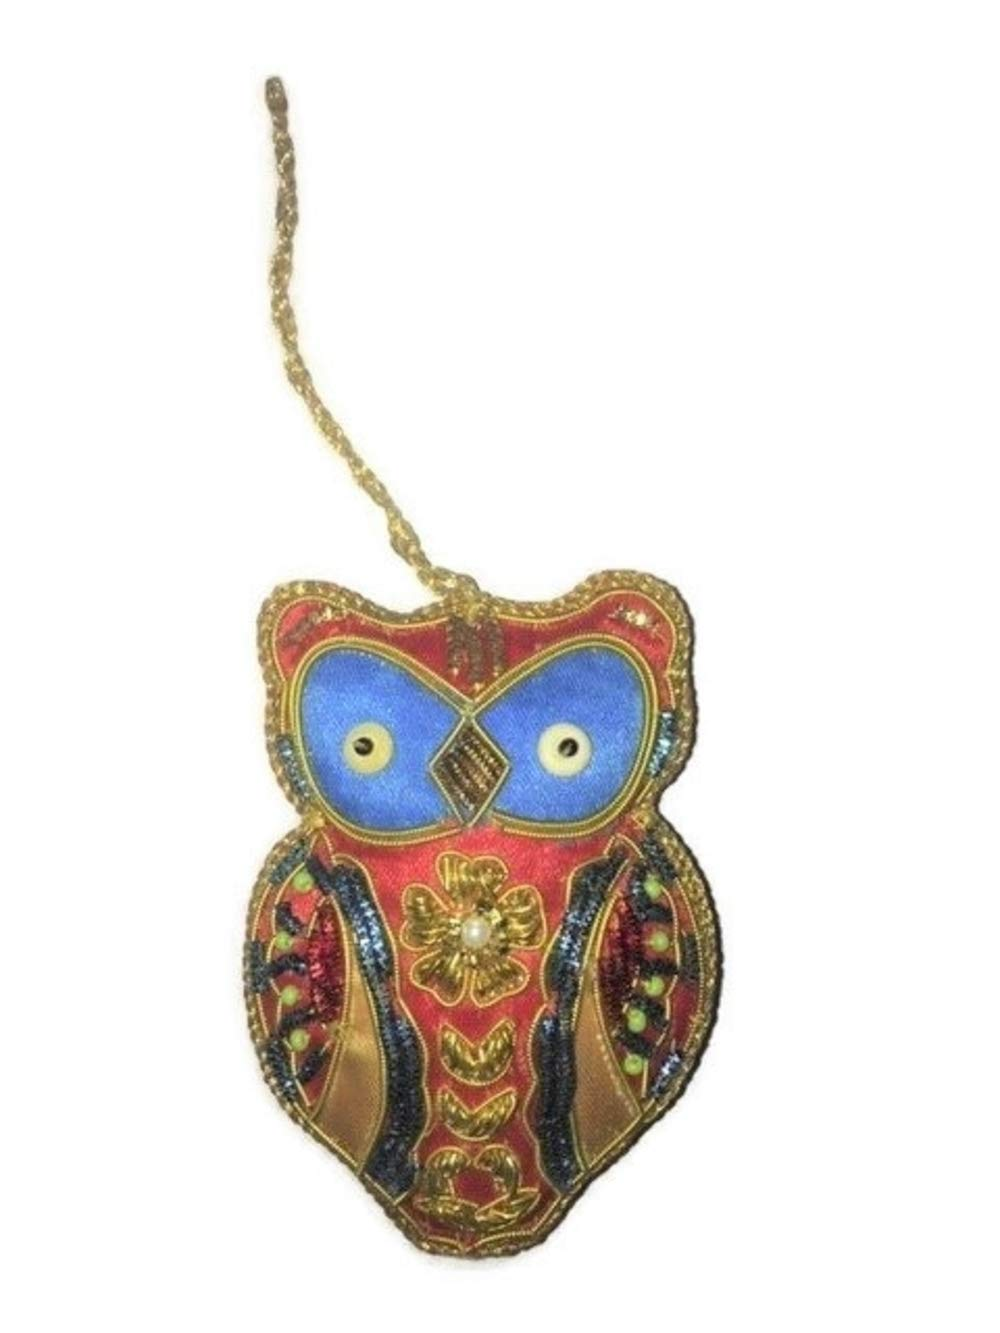 S&C Boho Zari Bohemian Silk Owl Ornament with Beads, Red Blue and Gold Decor (Red)